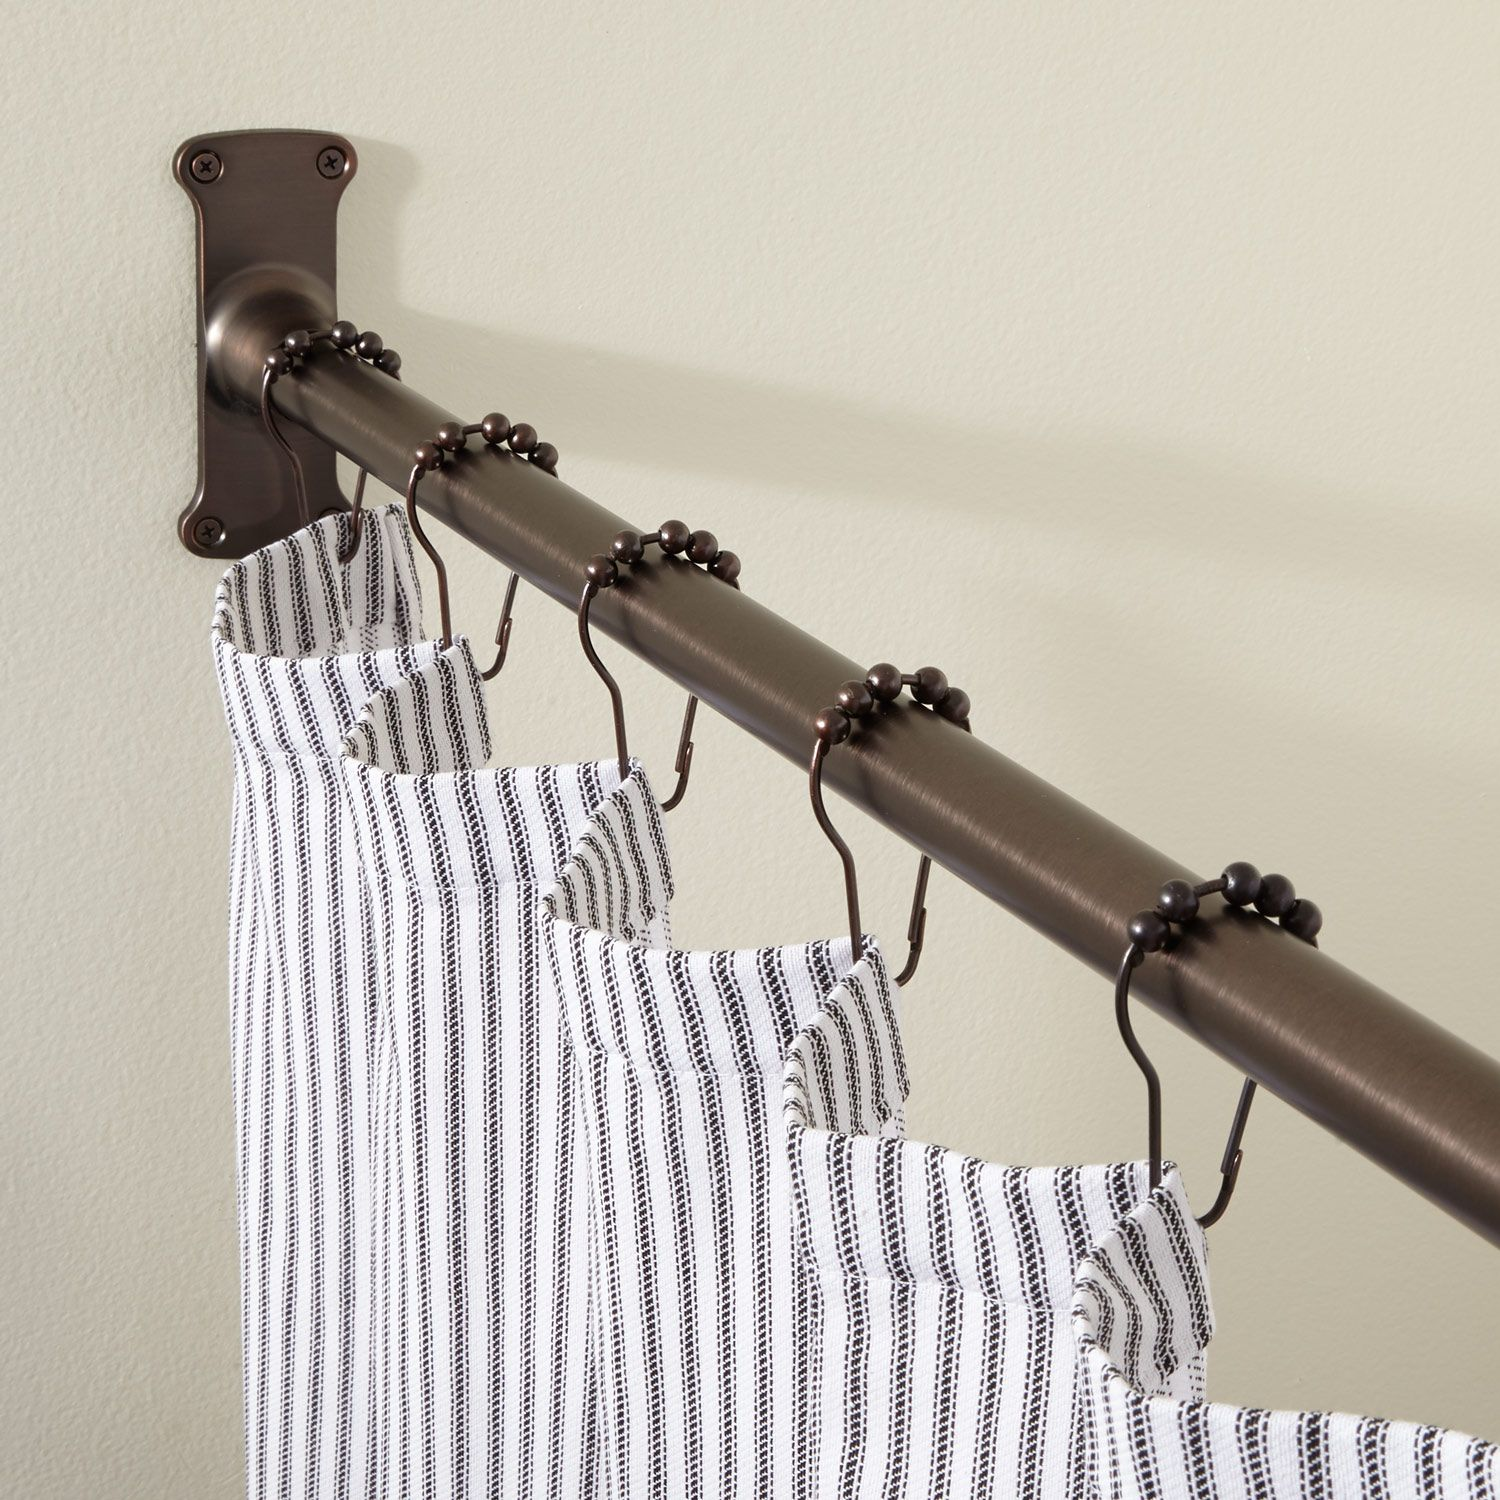 Shower Curtain Rods Image By Trish Taft On Door Curtains Portieres In 2020 Curtain Rods Curtains